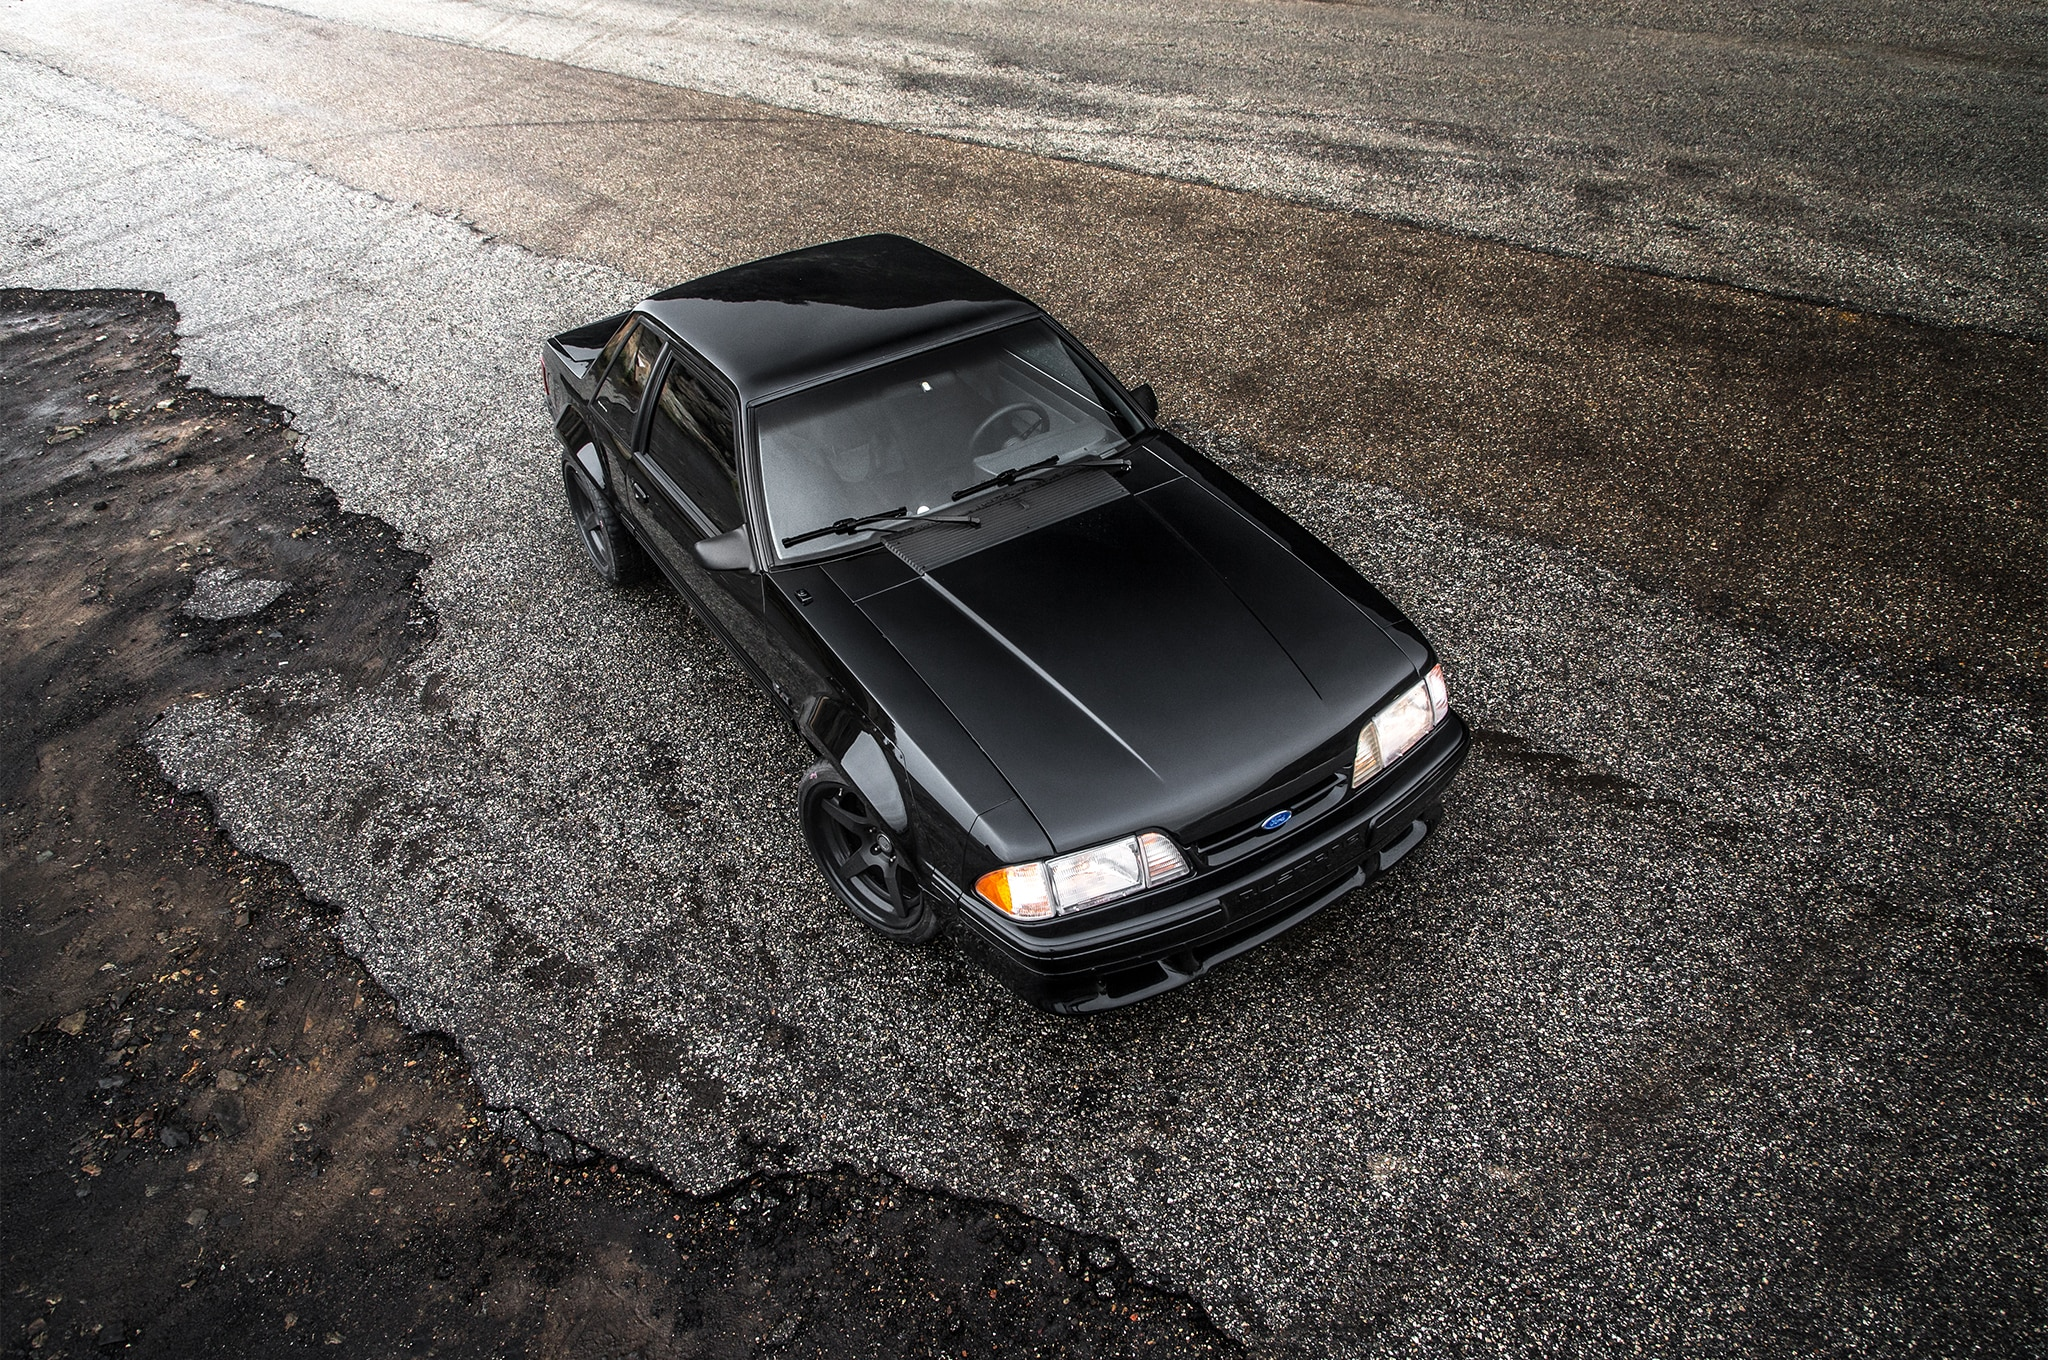 1988 Ford Mustang LX 5 0 SSP Top View